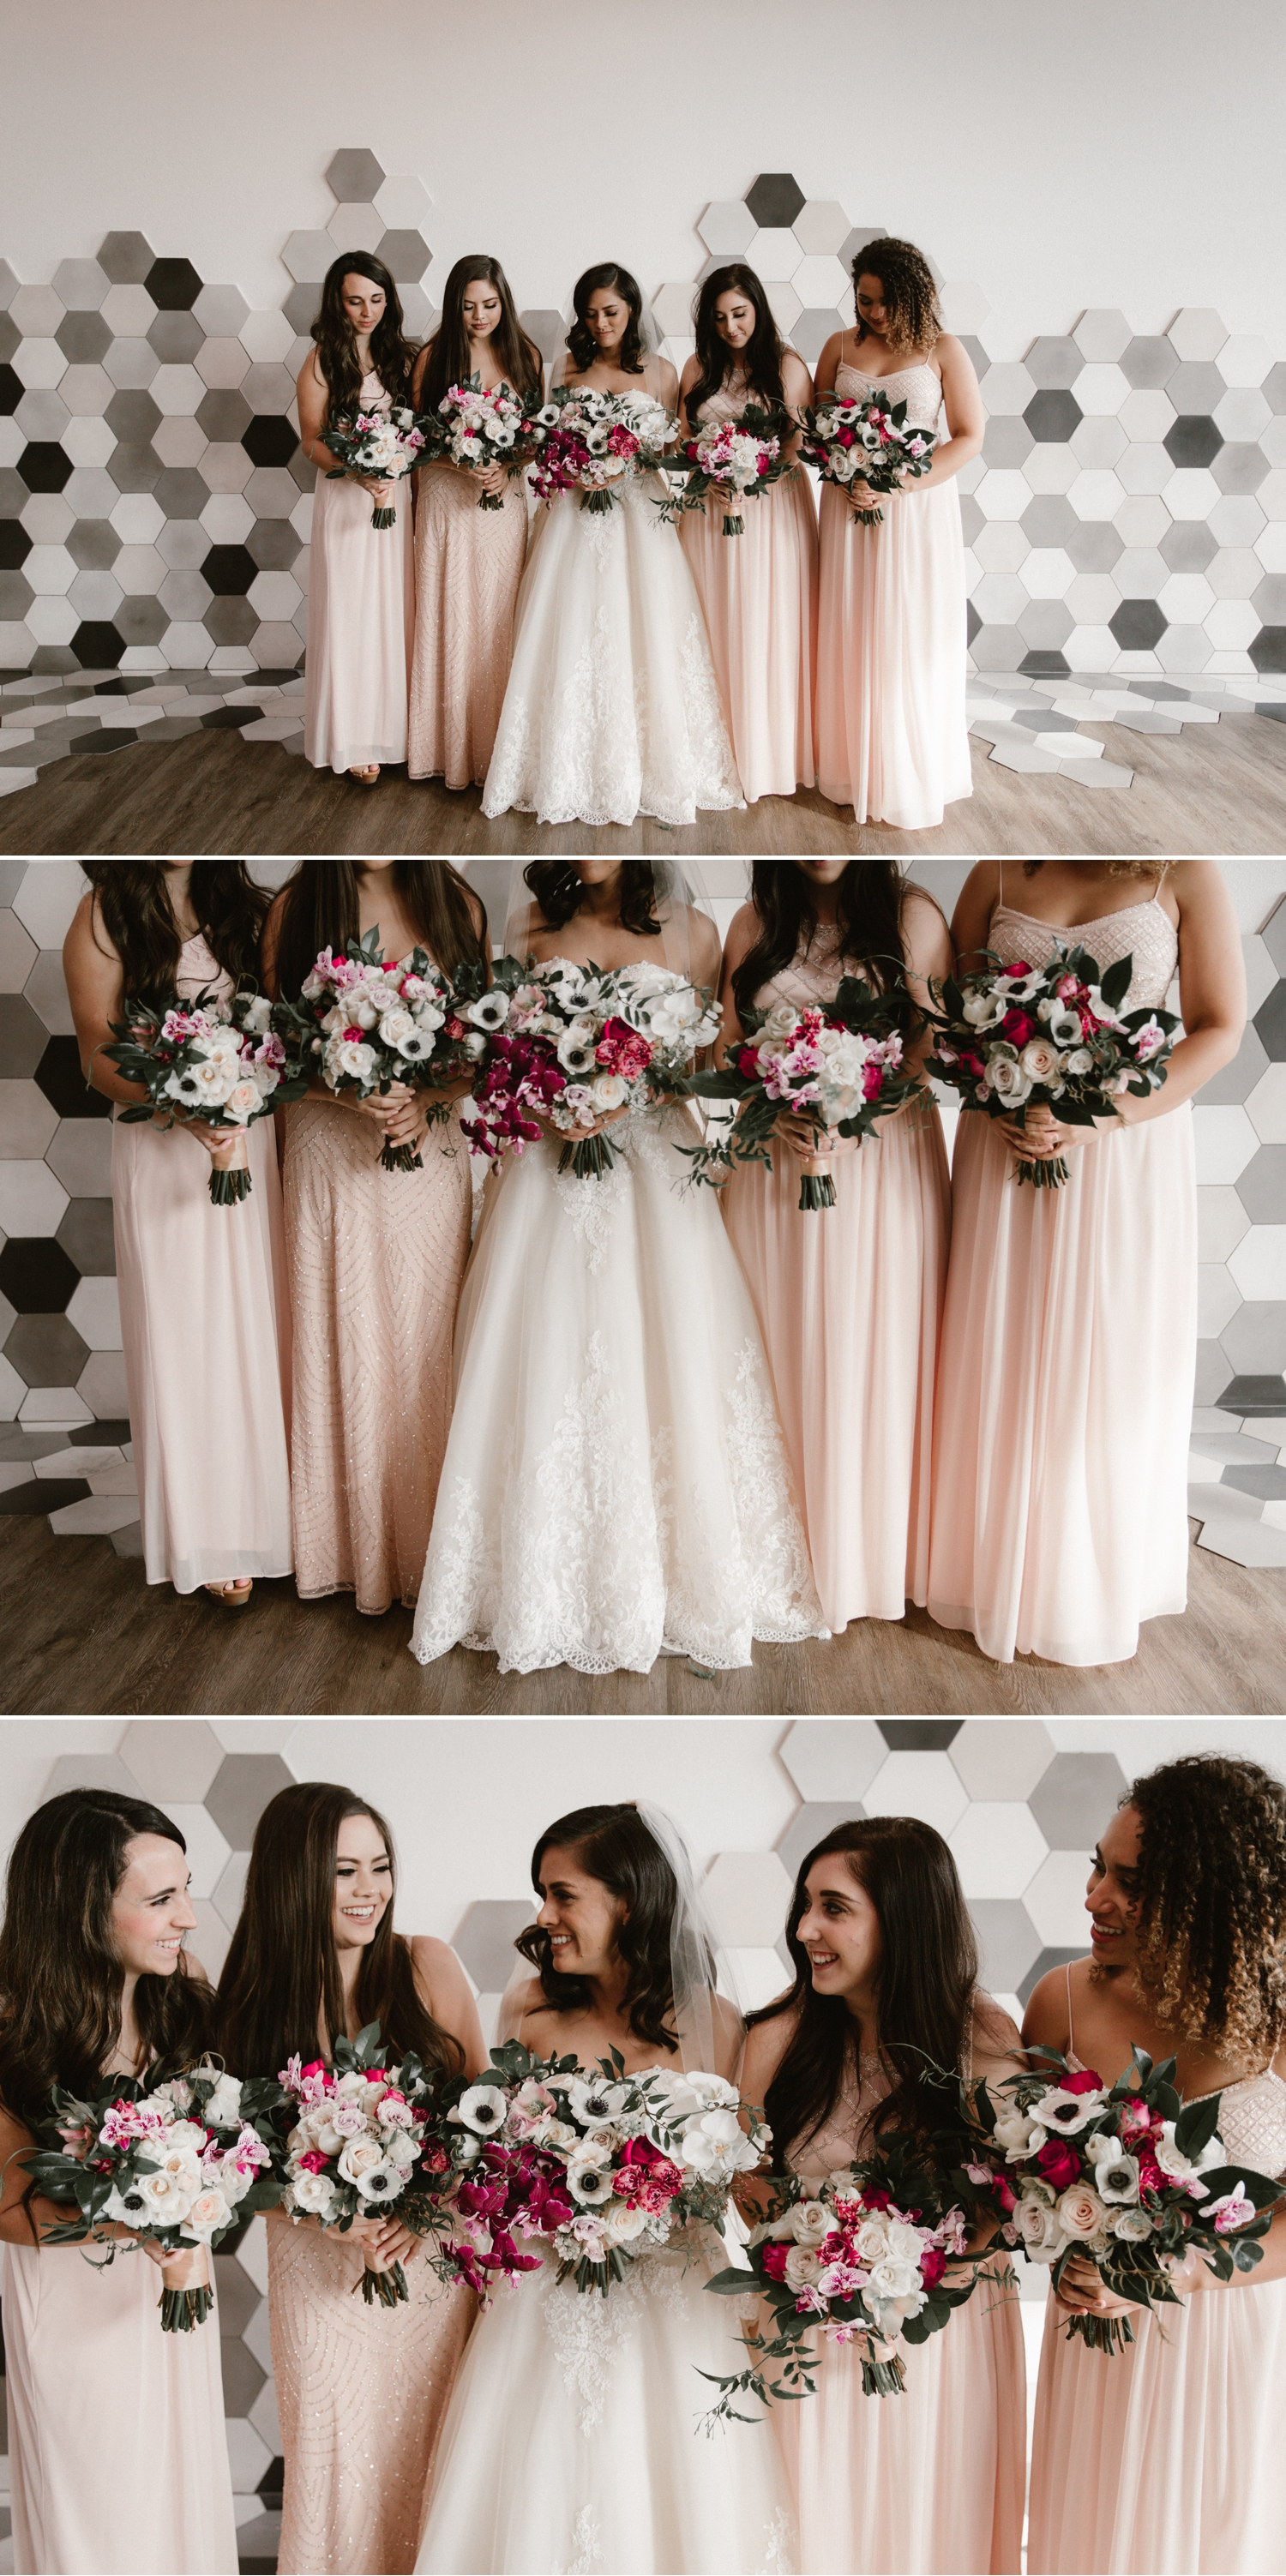 Bridesmaids at the 1912 wedding in Santa Ana by Paige Nelson